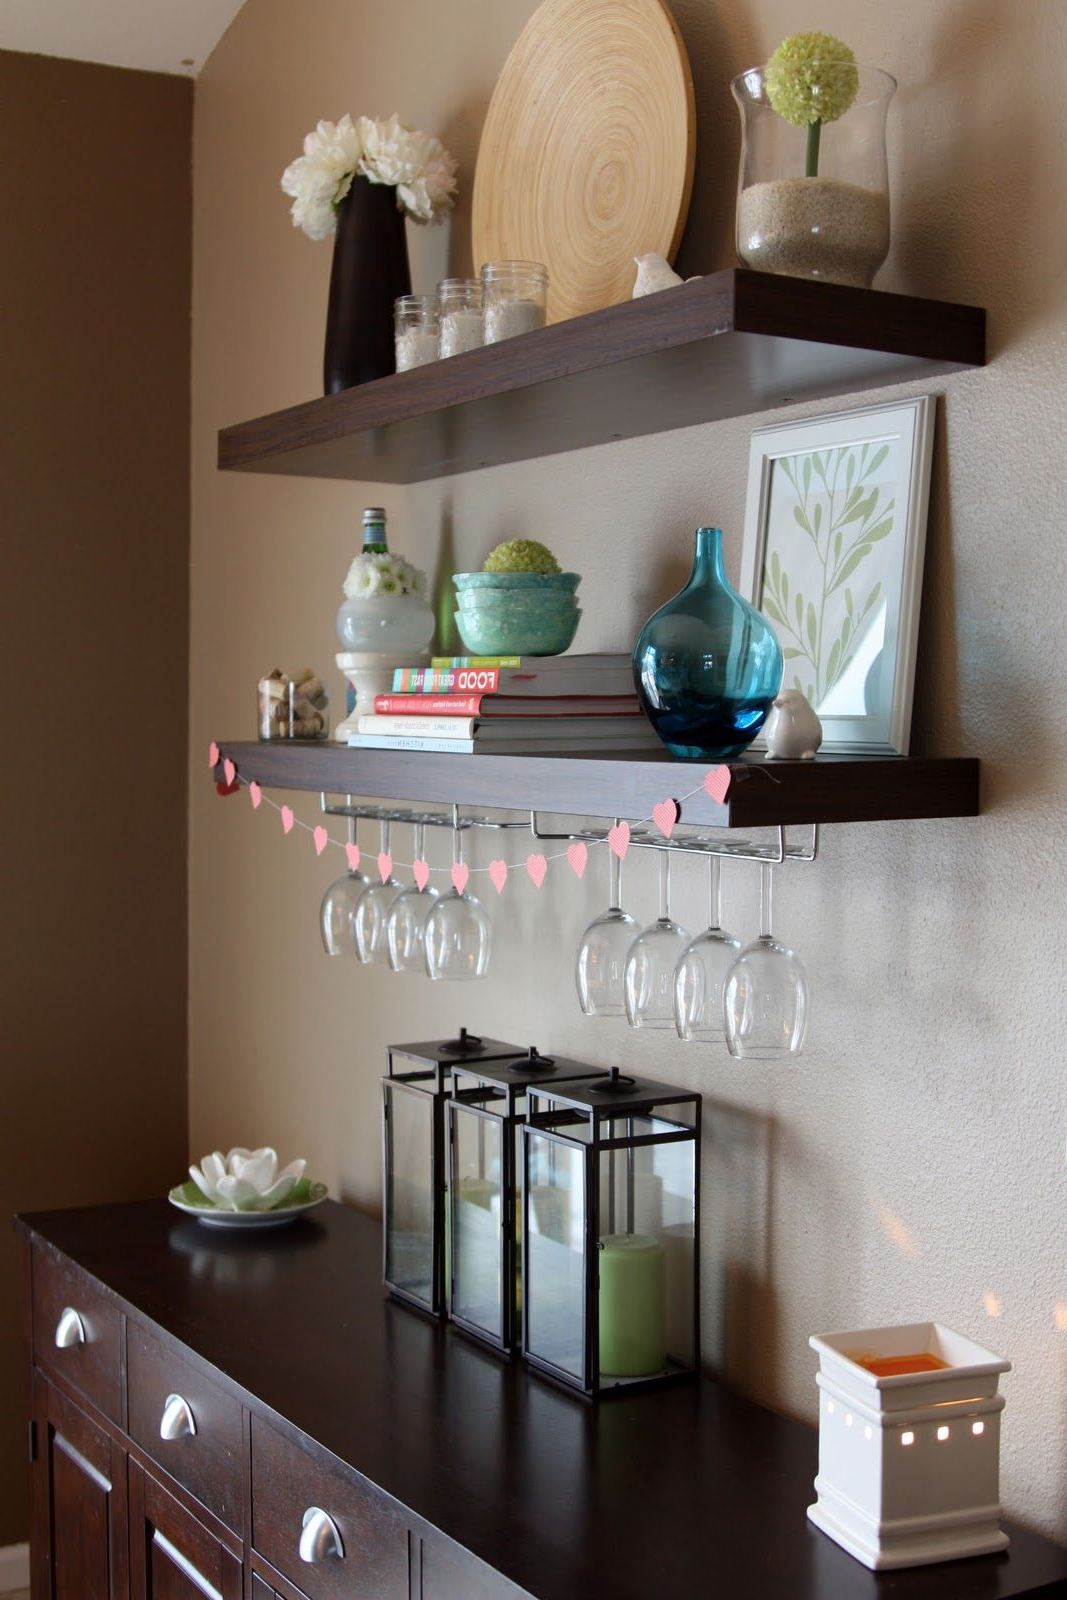 Love The Wine Glass Holders Incorporated Into The Shelving